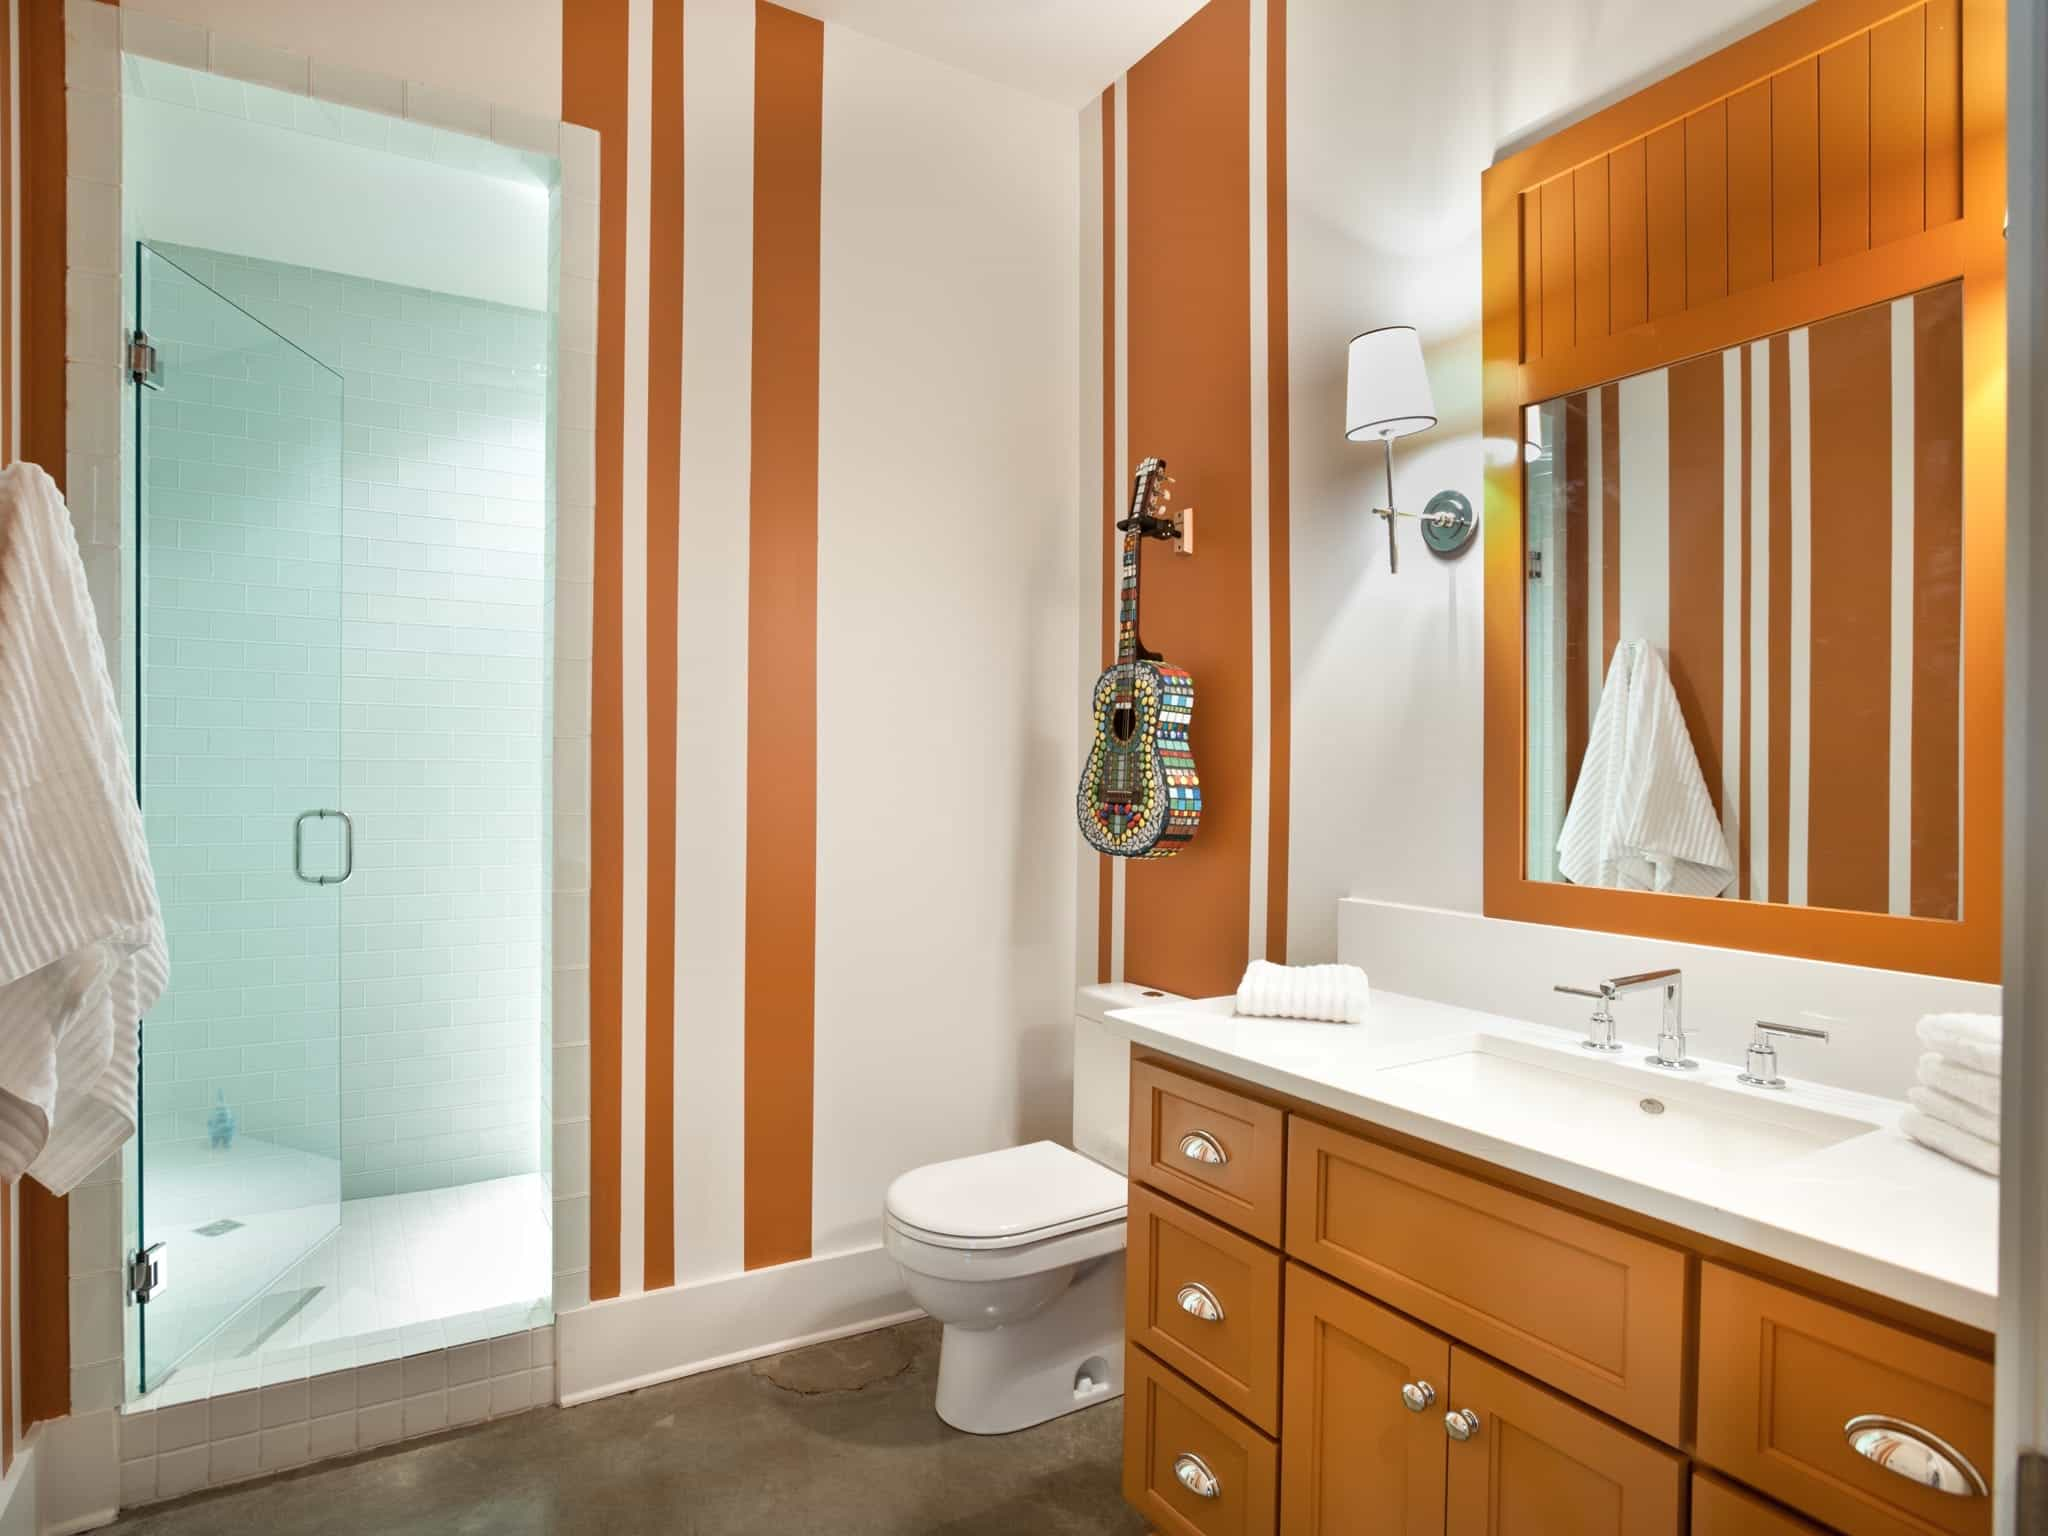 Contemporary Fresh Look Bathroom With Corner Vanity (Image 7 of 24)